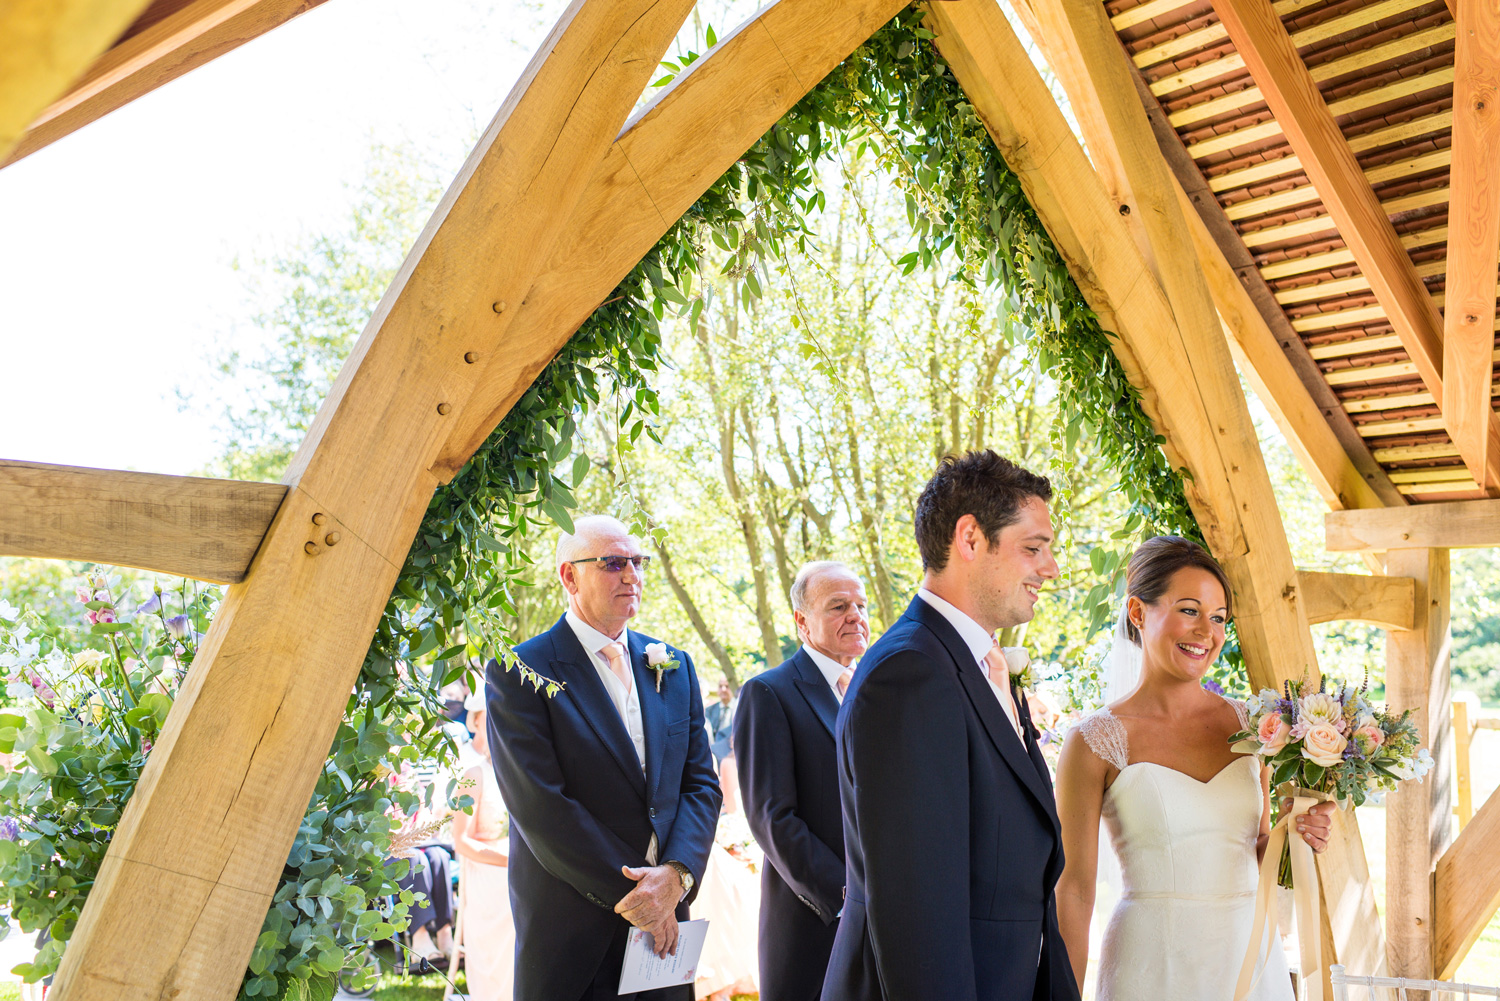 wedding ceremony at Millbridge court